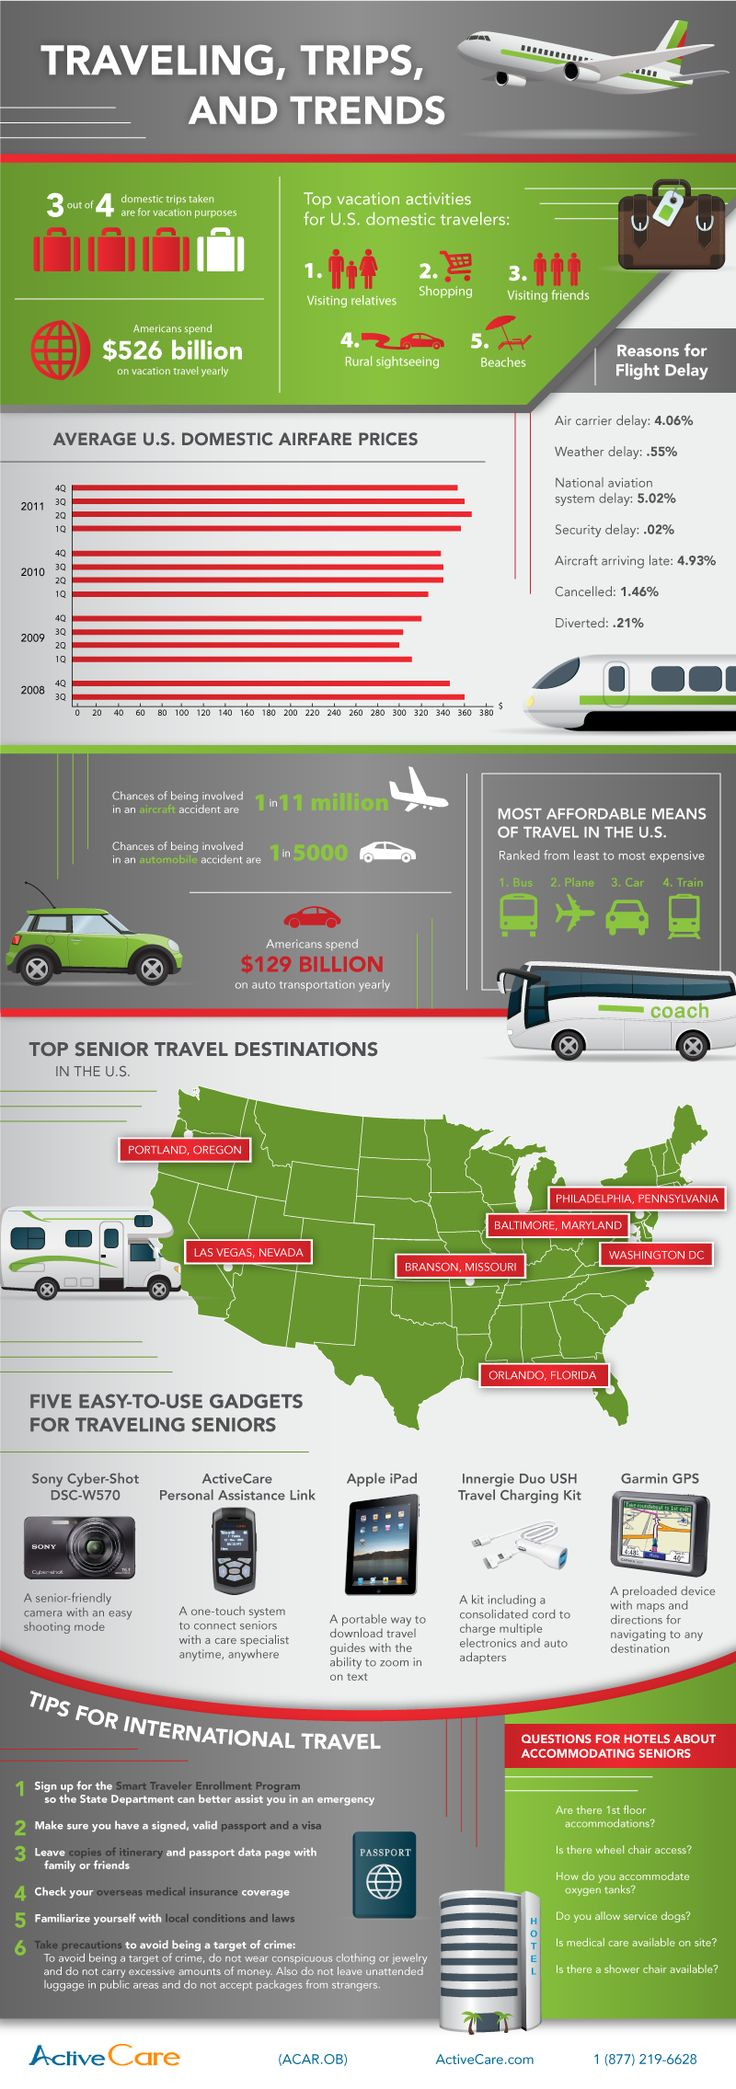 Traveling, Tips and Trends for Seniors. One of the greatest perks of retirement is having more time to travel, and now that spring is just around the corner, more and more senior citizens are catching the travel bug. But whether you're traveling a few hundred miles to visit the grandchildren or a few thousand miles around the world, it's important to plan ahead.